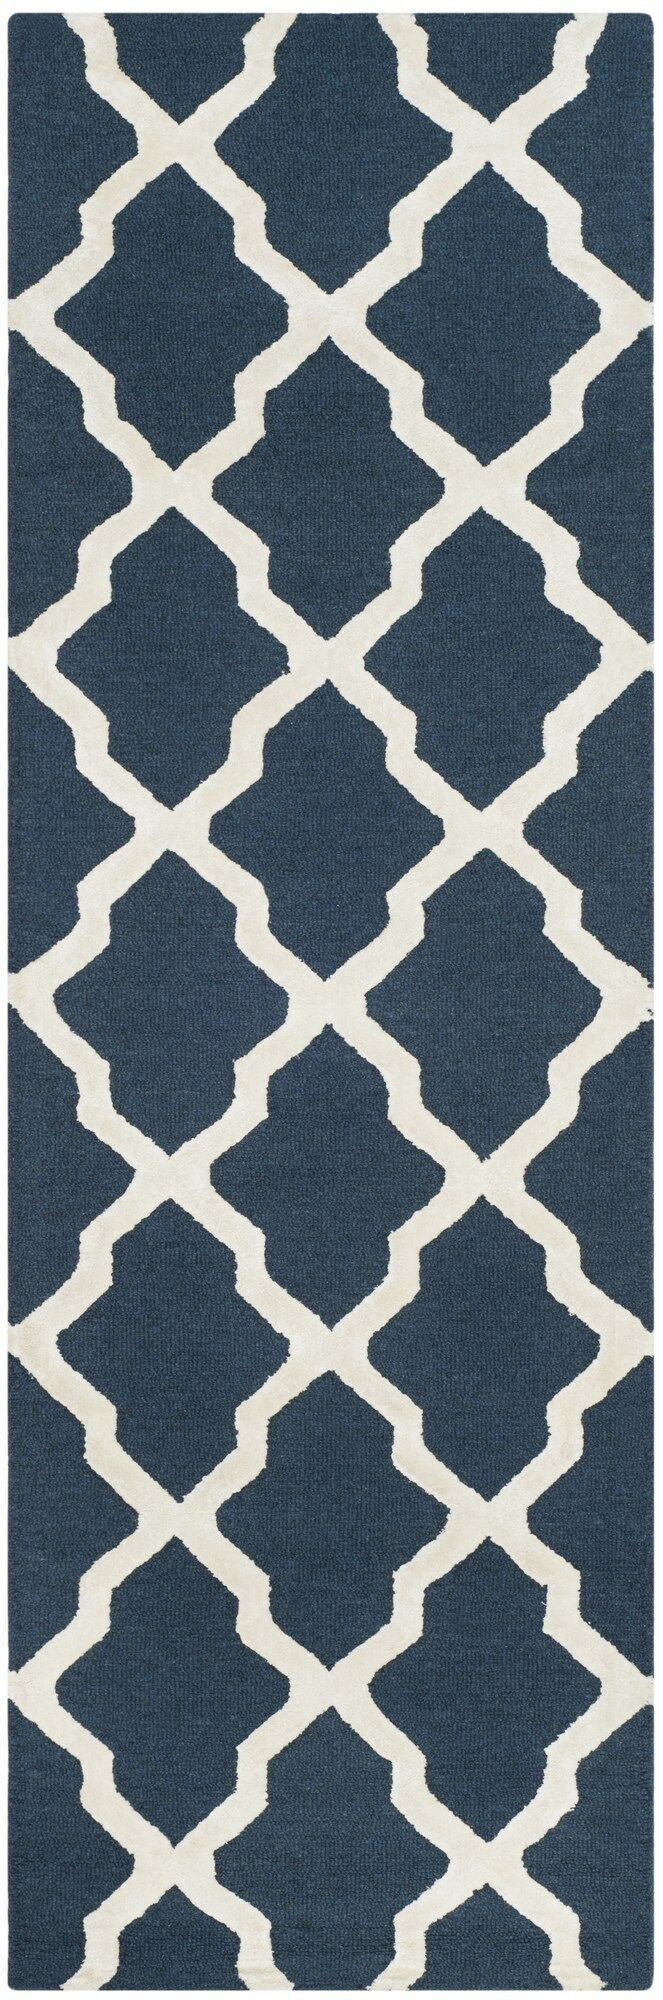 Parker Lane Hand Tufted Navy Area Rug Rug Size: Rectangle 6' x 9'